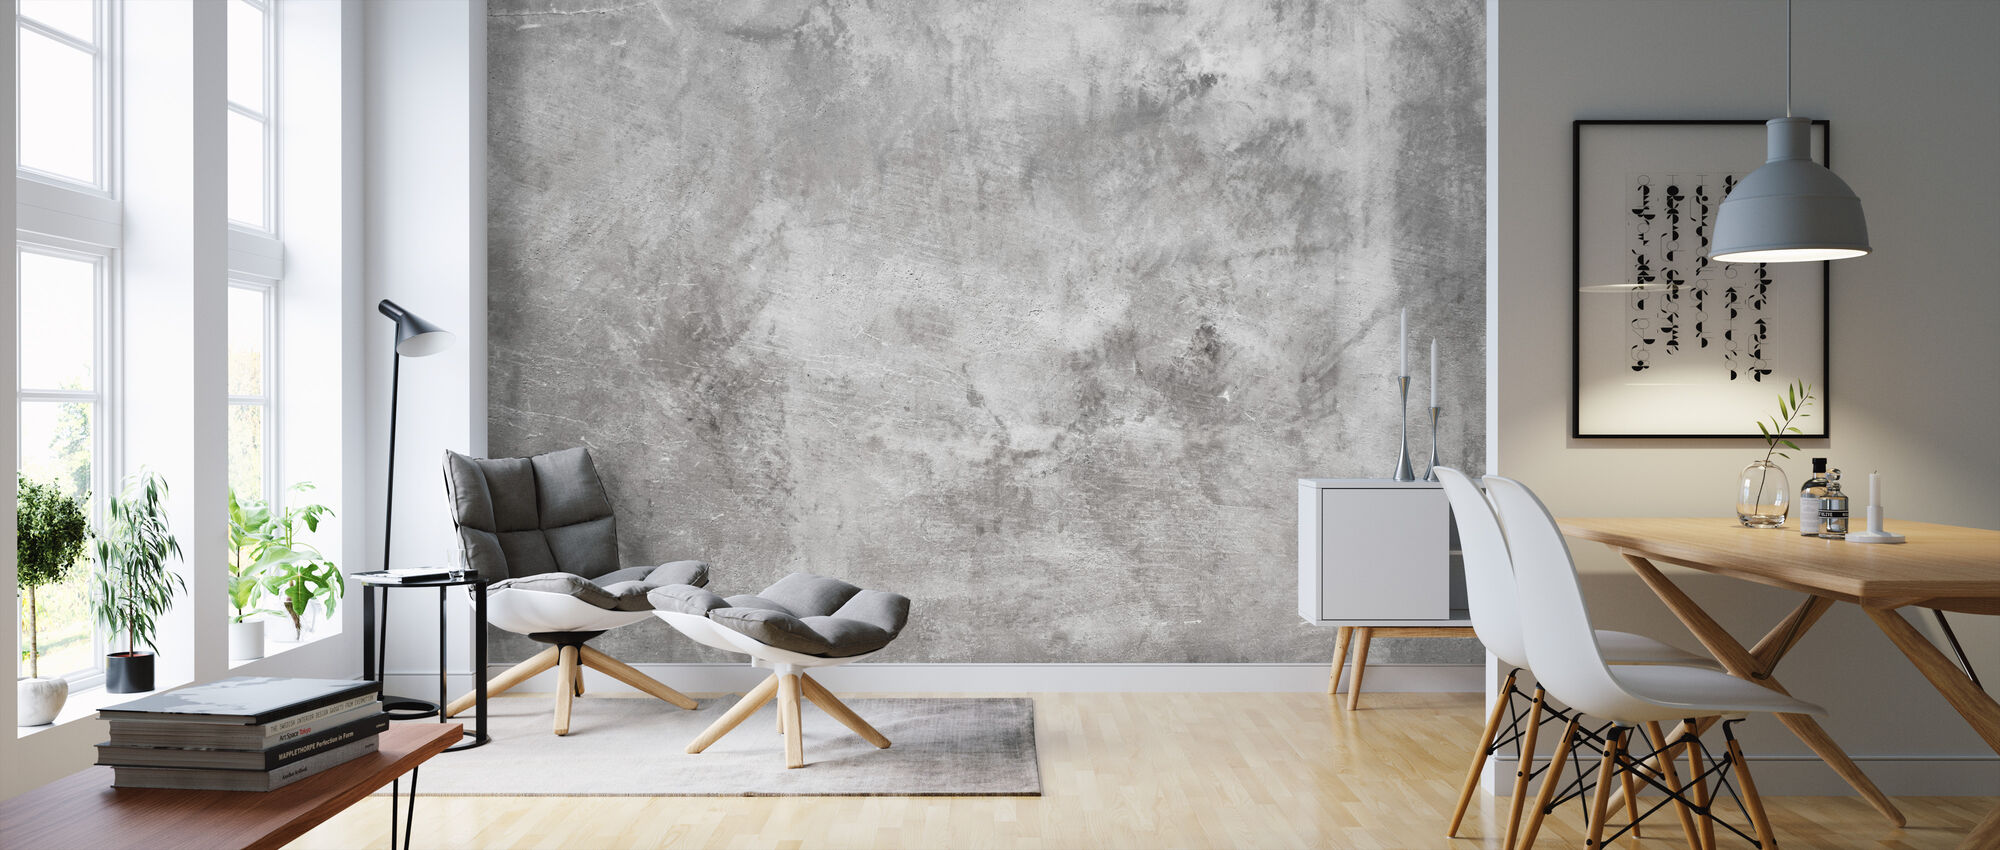 Grungy Rough Concrete Wall - Wallpaper - Living Room